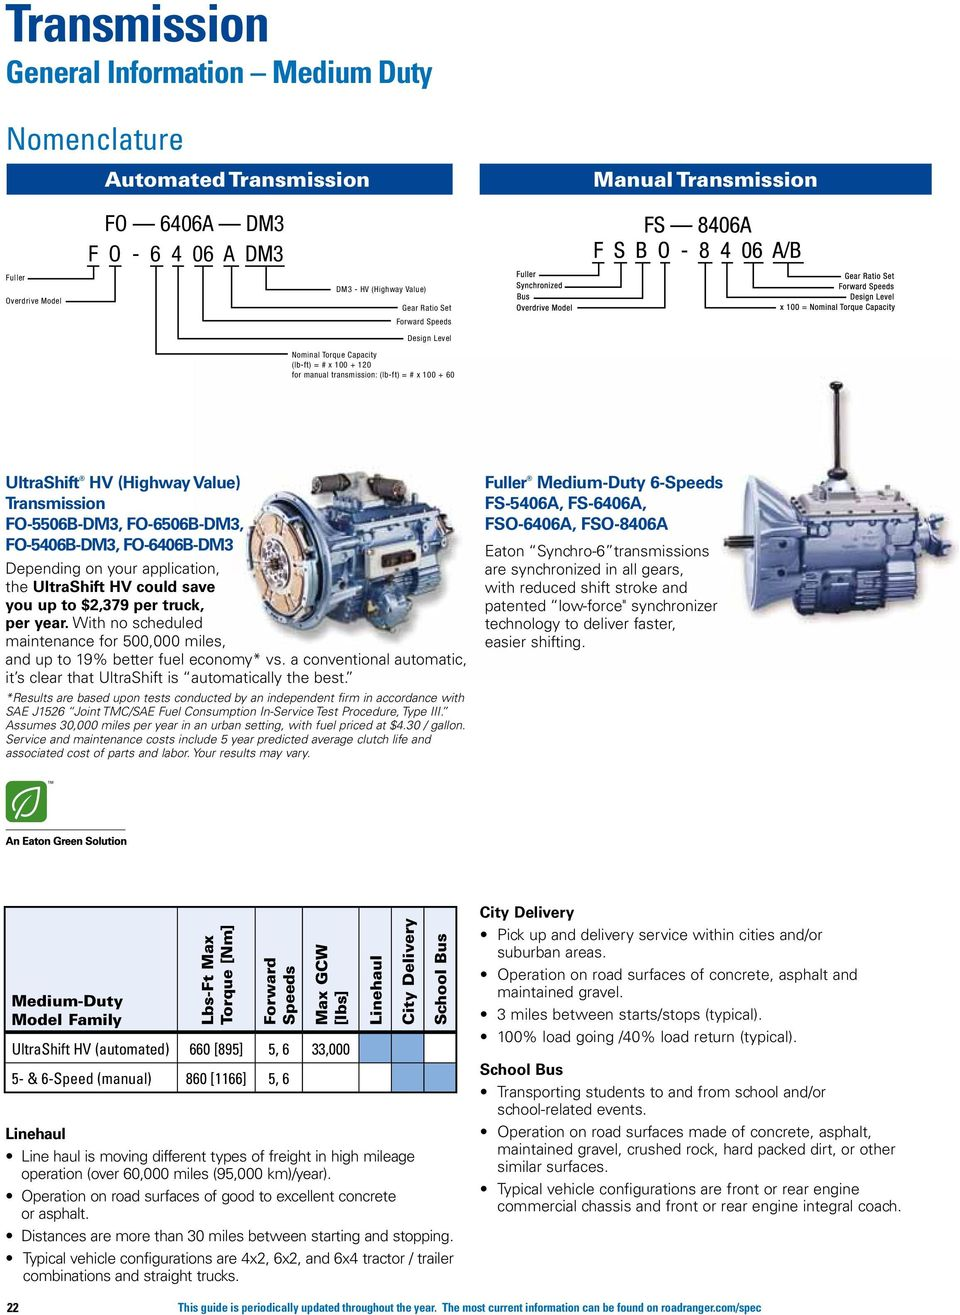 Transmission General Information Heavy Duty Automated Pdf Free Download